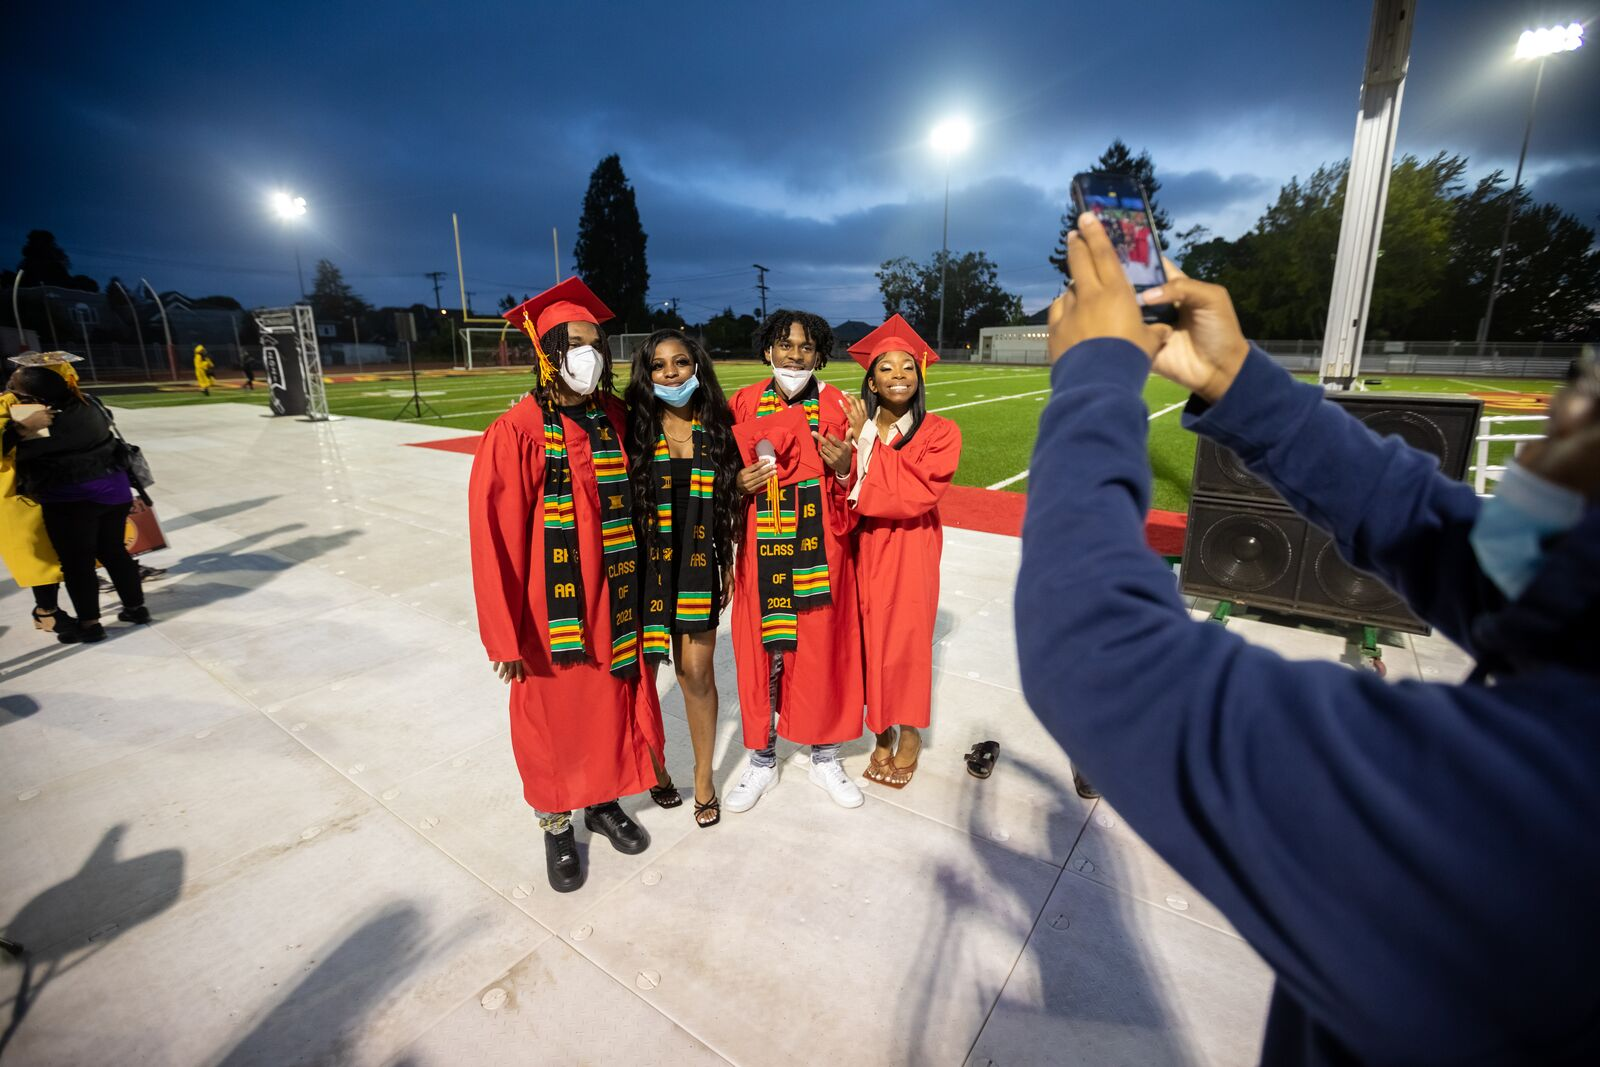 Graduates pose for a photo following the Celebration of Black Excellence ceremony at Berkeley High School on June 4, 2021. Credit: Kelly Sullivan